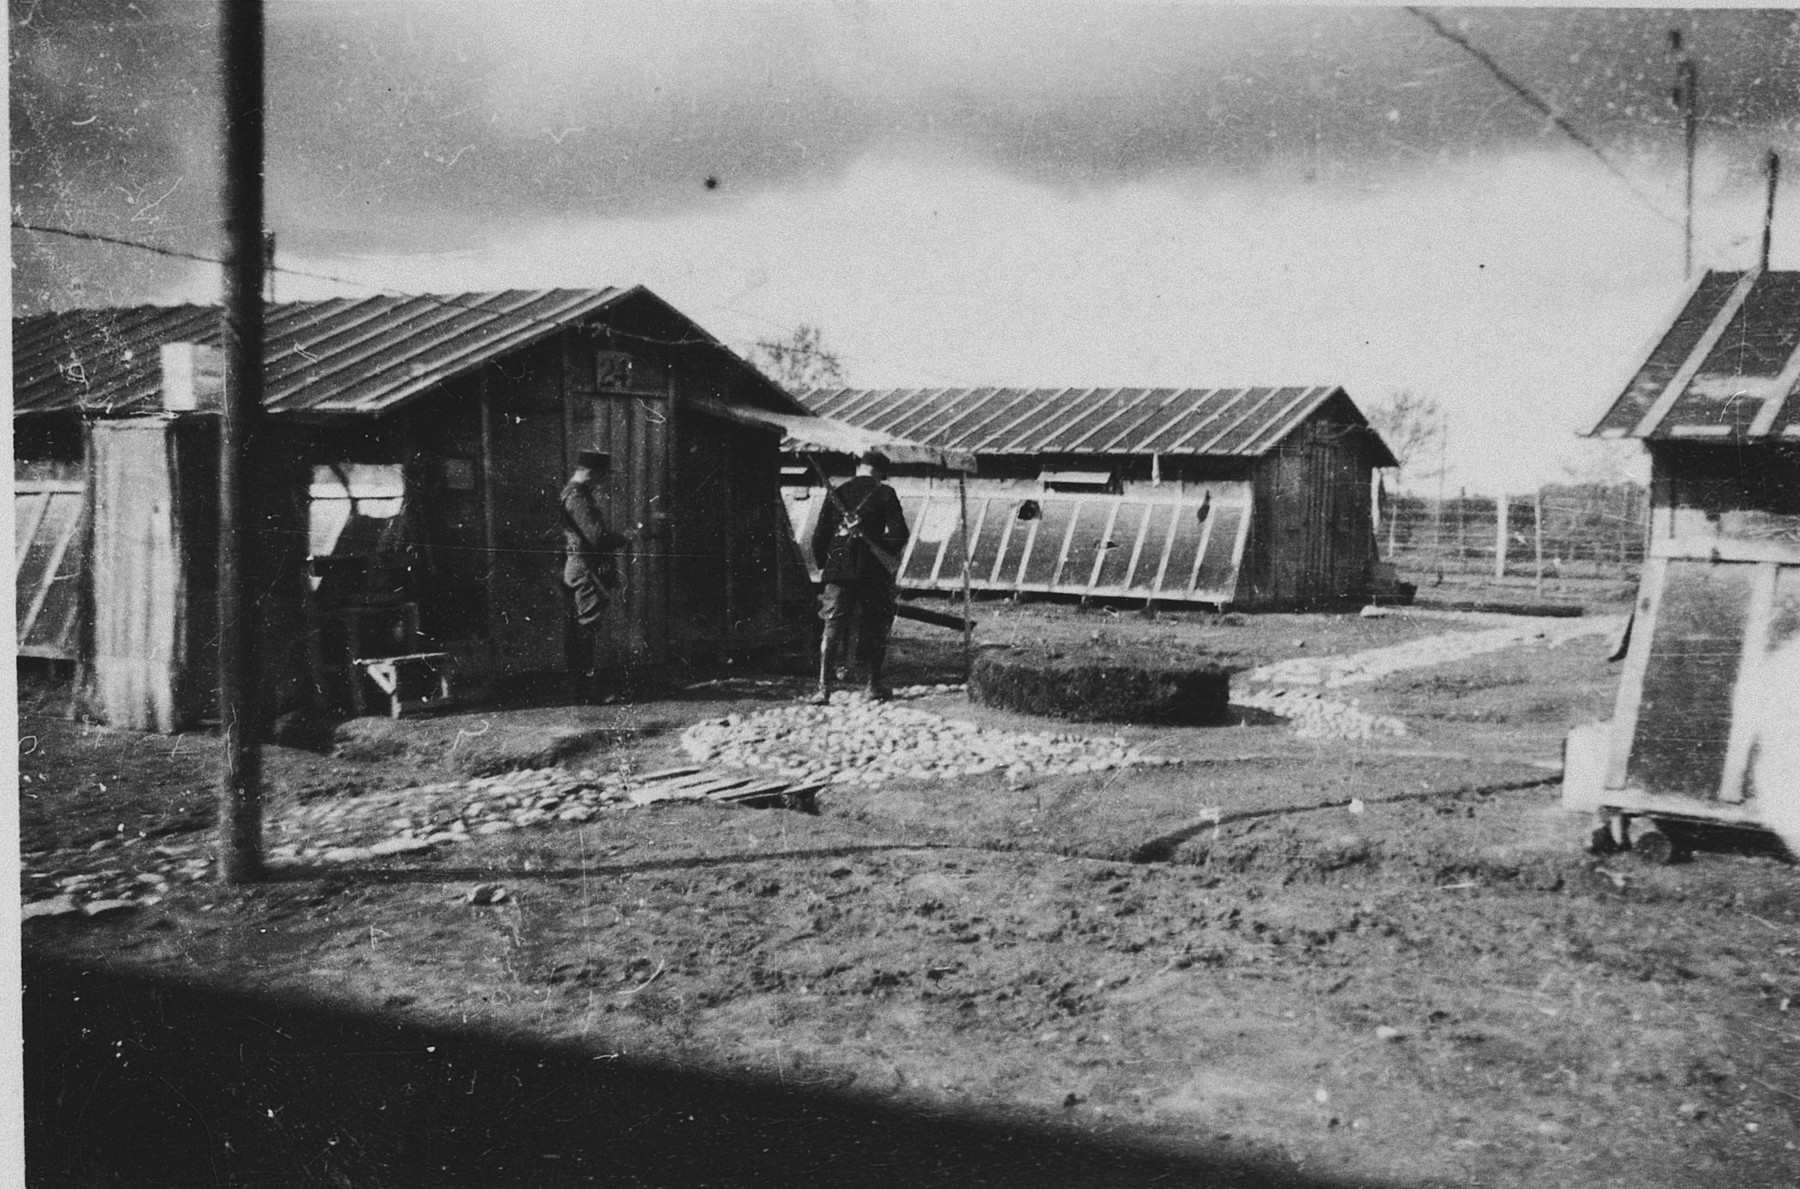 View of the barracks in the Gurs concentration camp in France.